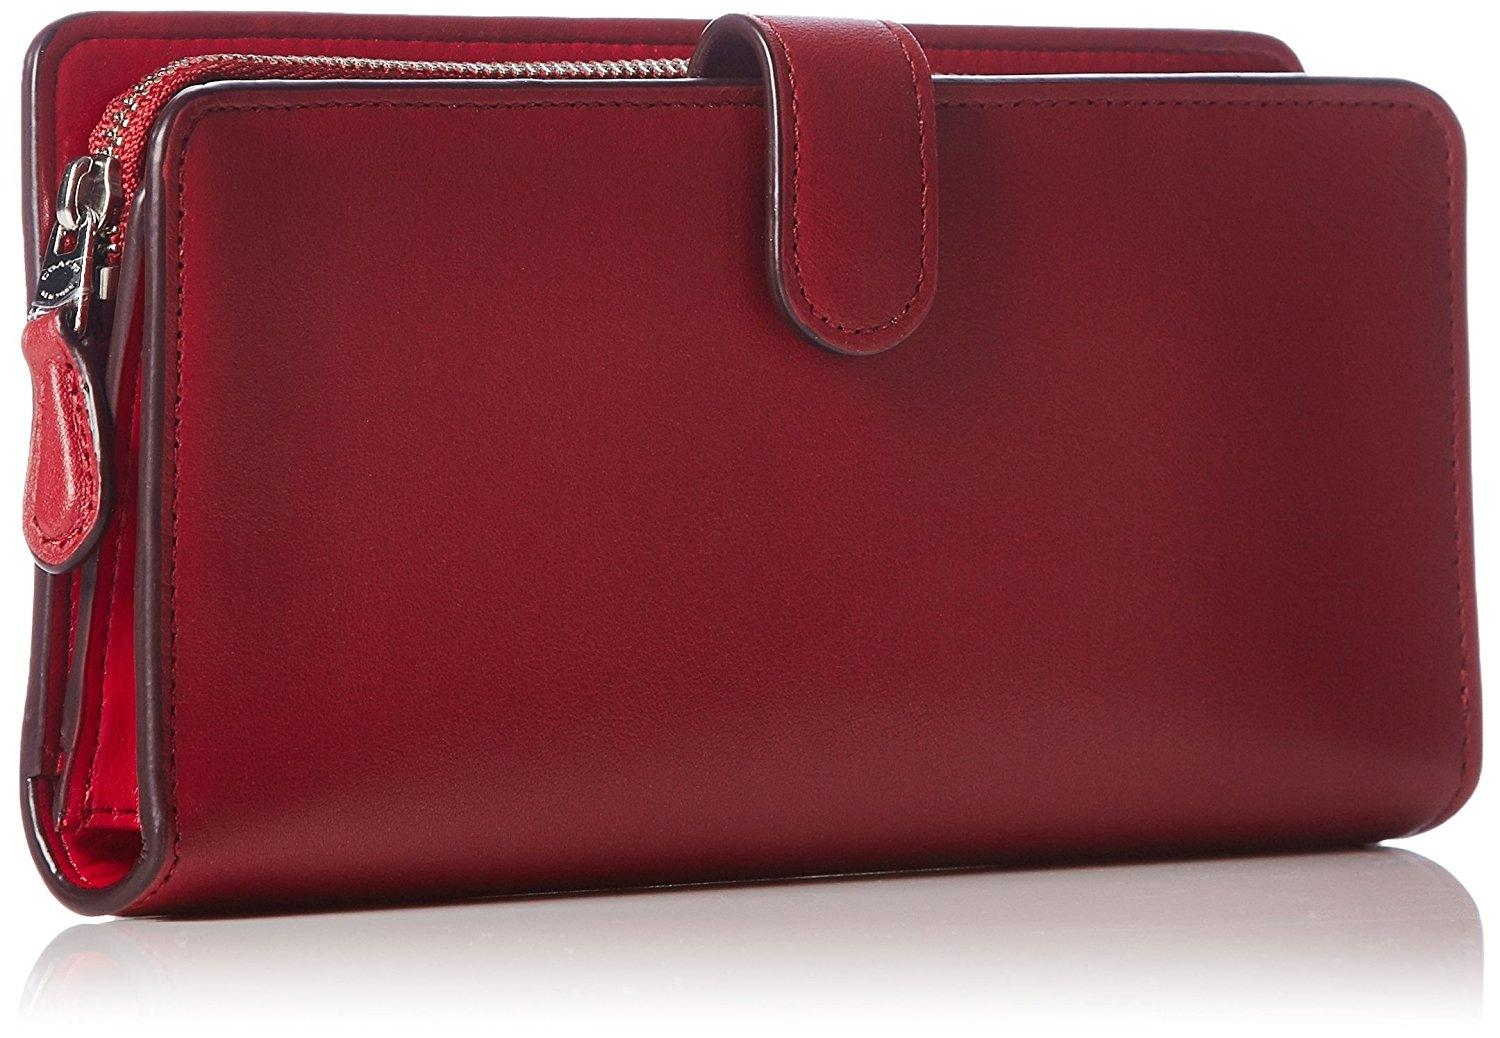 0360c86fe0d84 ... order coach coach madison skinny red currant leather wallet clutch.  12345 accbf bd5f7